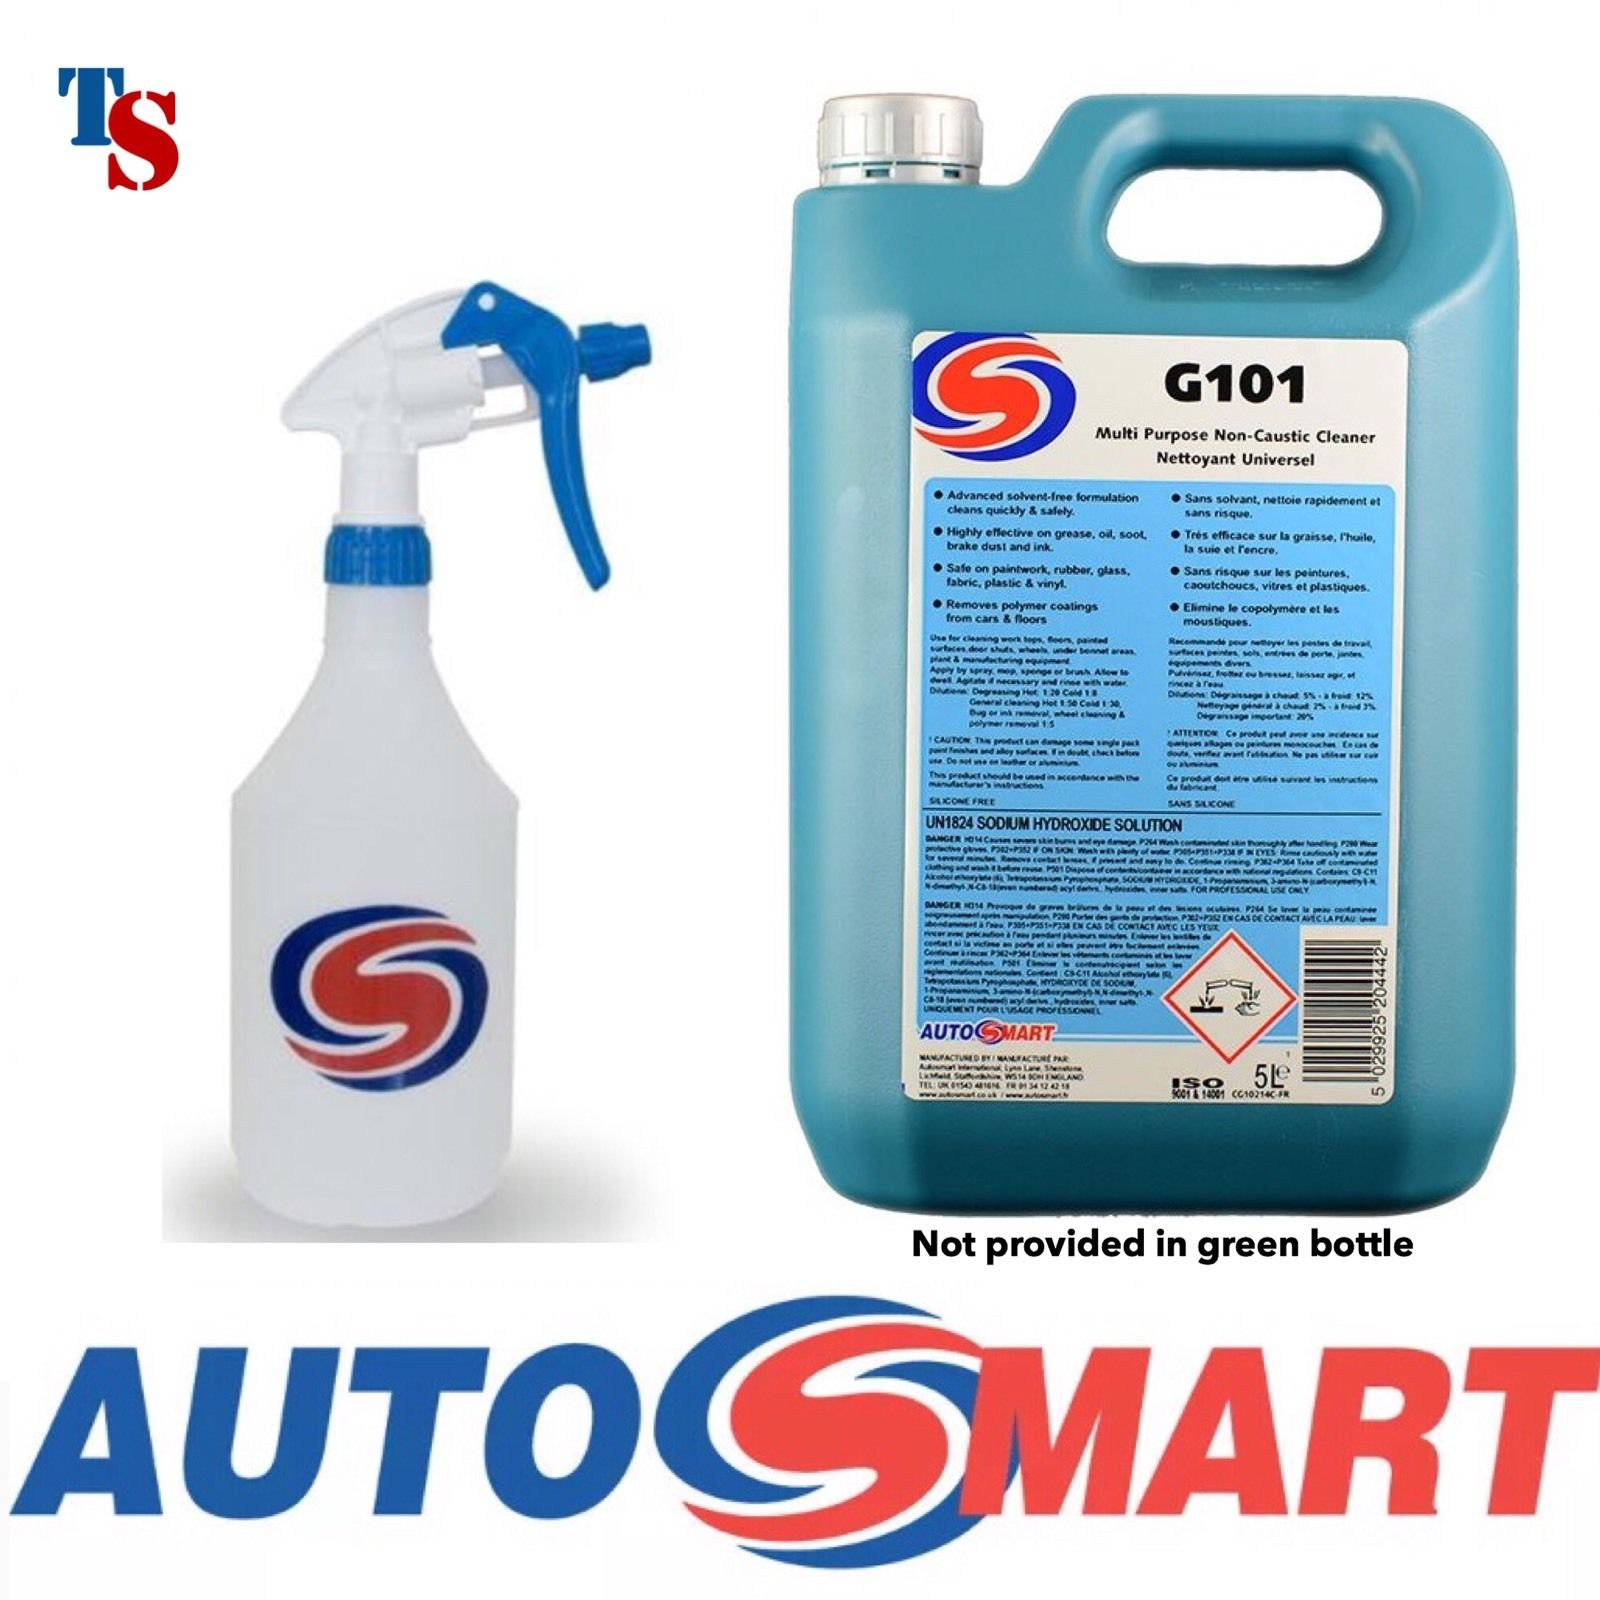 autosmart g101 5l 5 litre as spray multi objective cleaner automotive residence genuine new. Black Bedroom Furniture Sets. Home Design Ideas